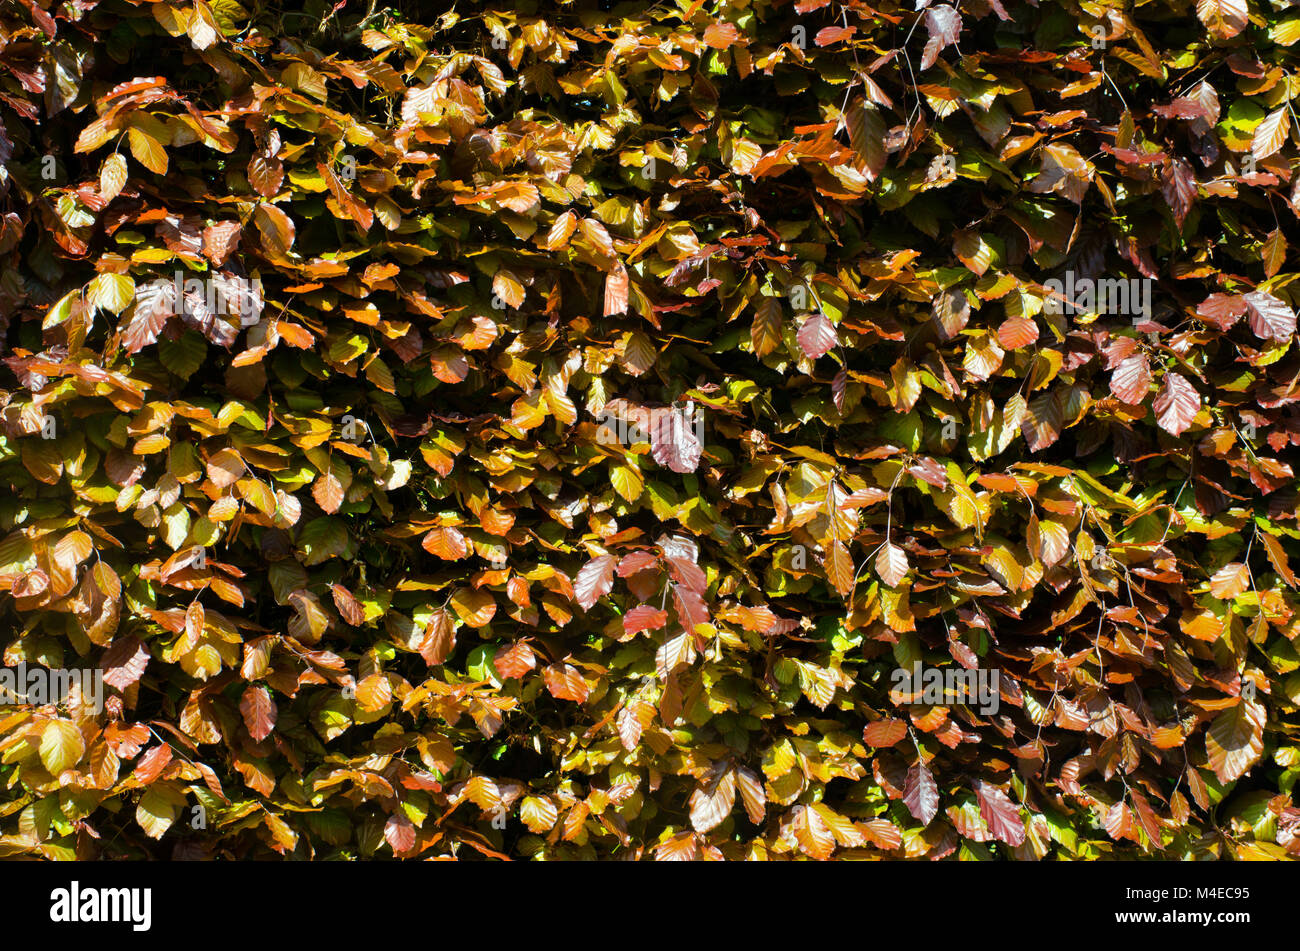 Brown and purple leaves in hedging - Stock Image